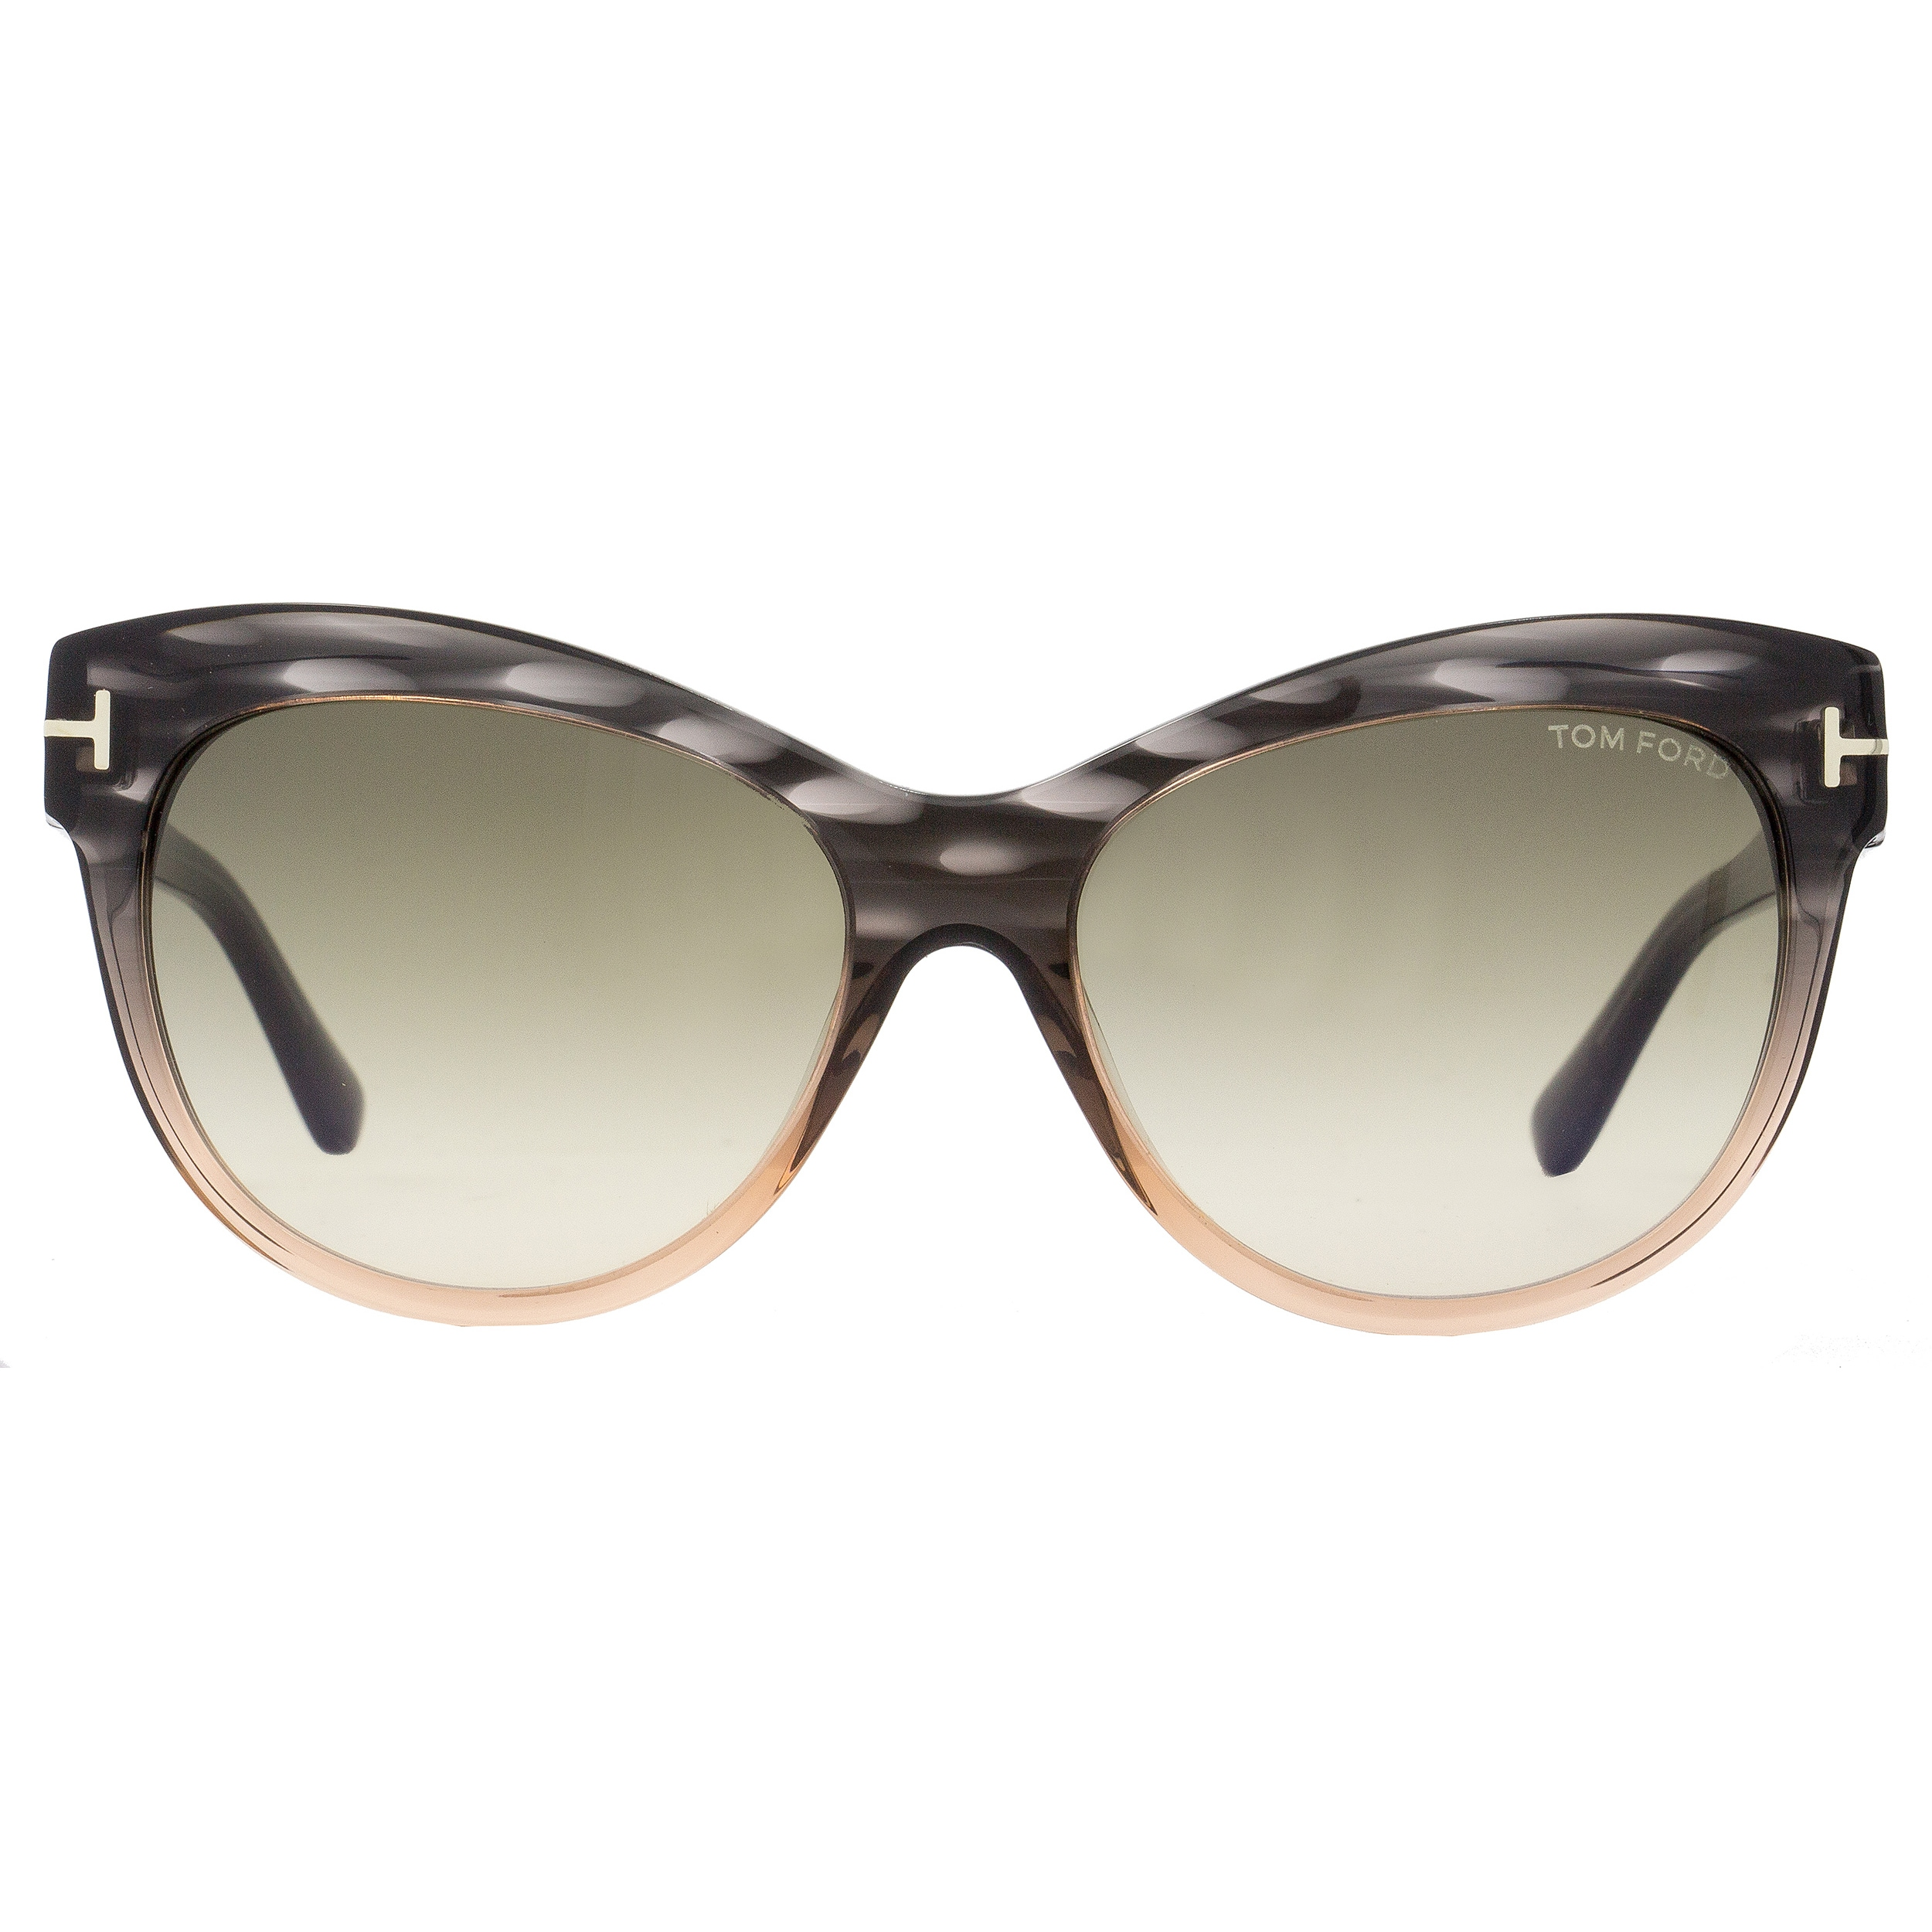 38897ca84993 Shop Tom Ford TF430 Lily 20P Women s Melange Gray Peach Rose Green Gradient  Lens Sunglasses - Free Shipping Today - Overstock - 18221895